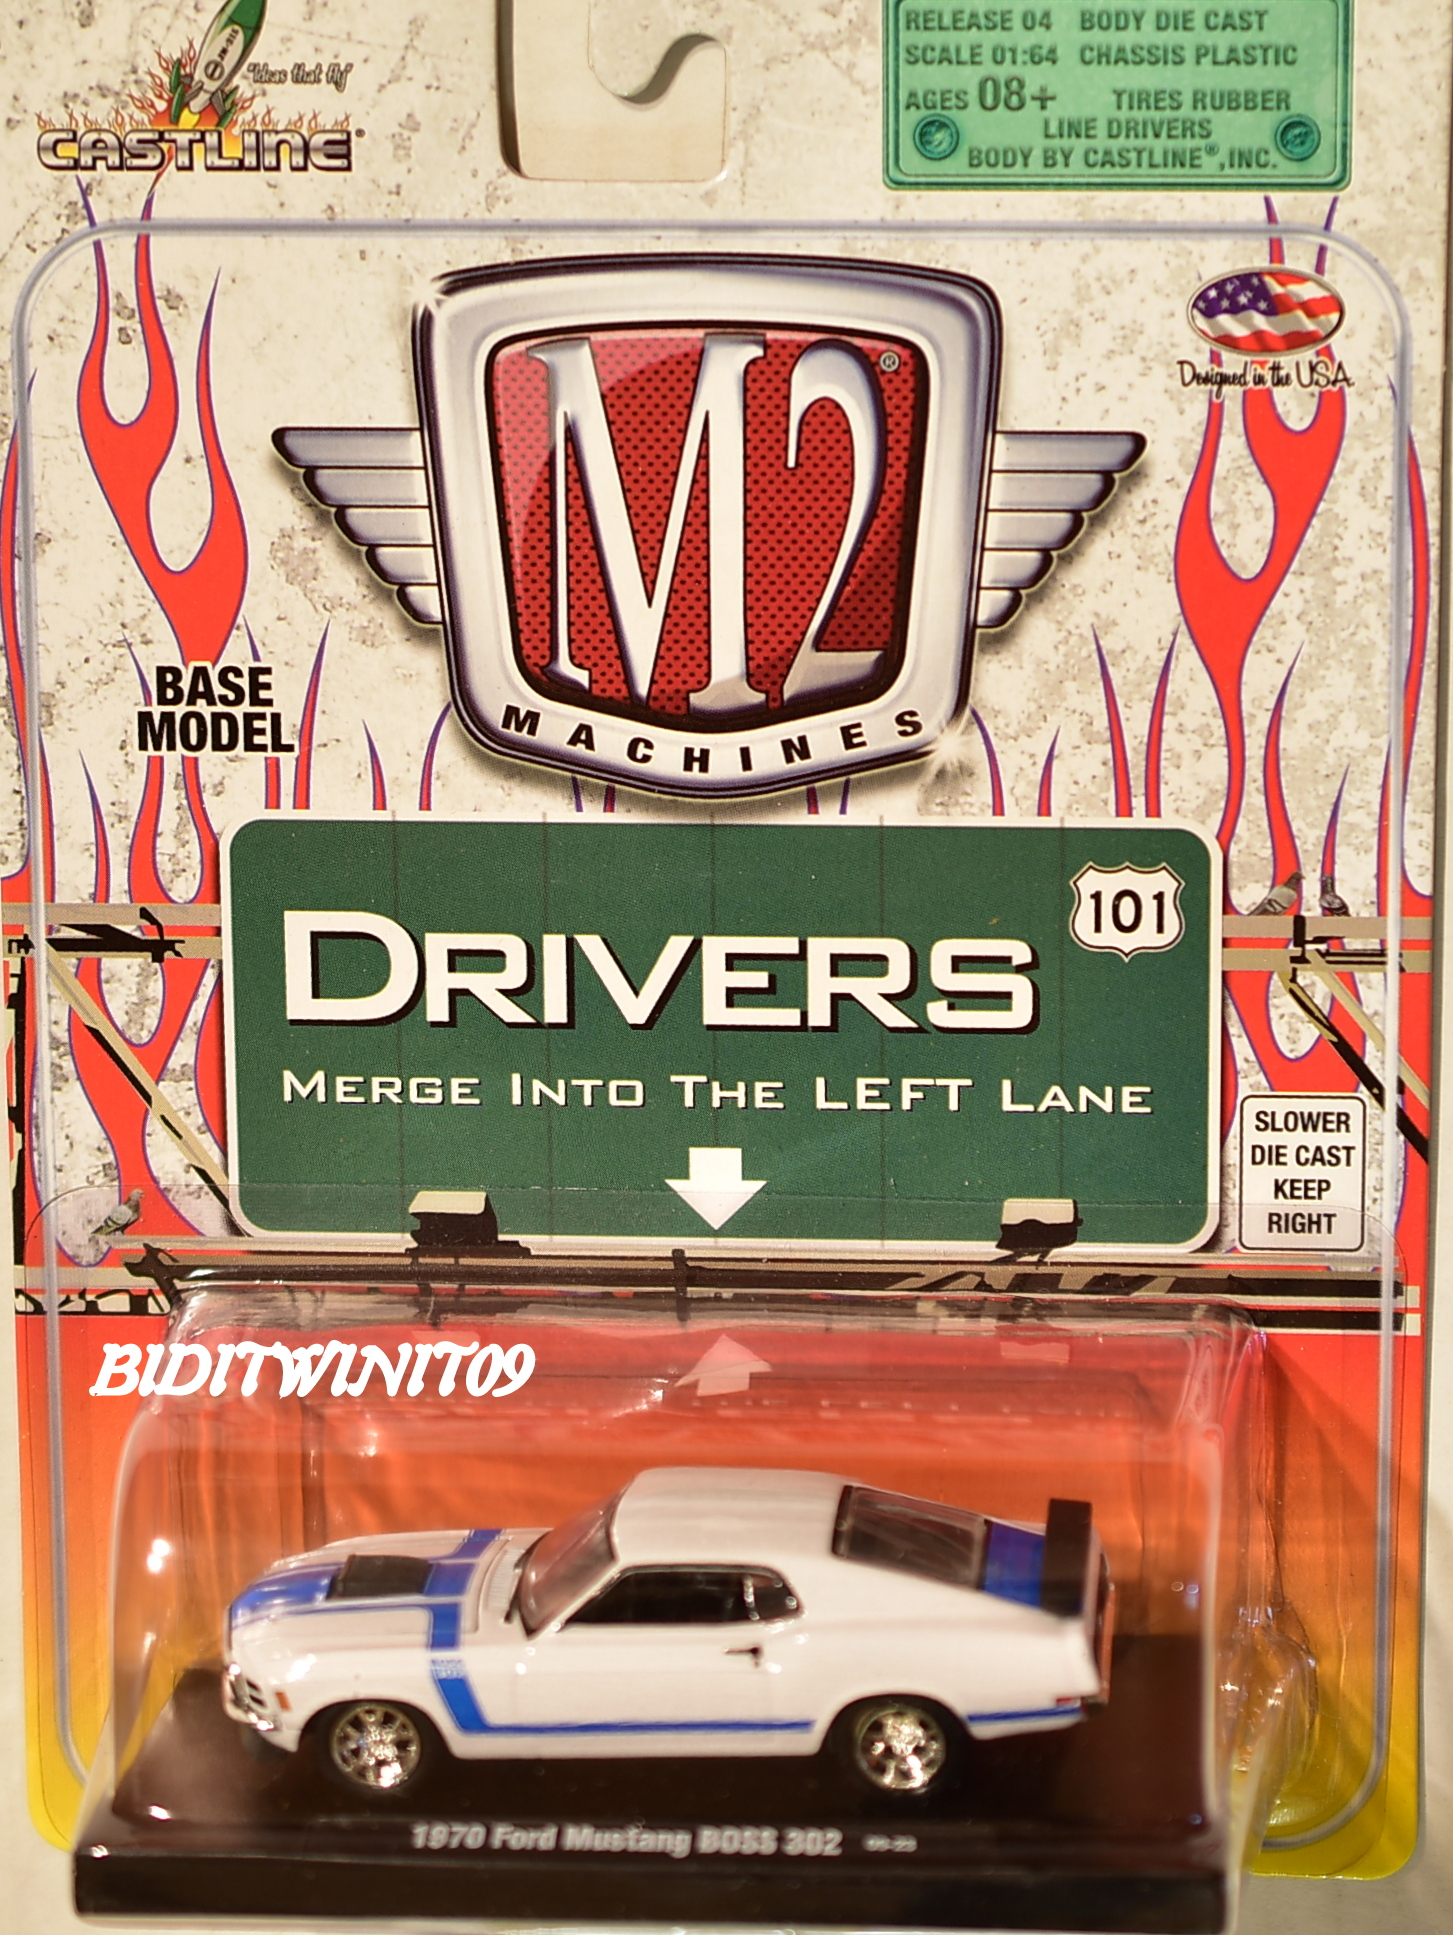 M2 MACHINES AUTO-DRIVERS 1970 FORD MUSTANG BOSS 302 09-23 E+